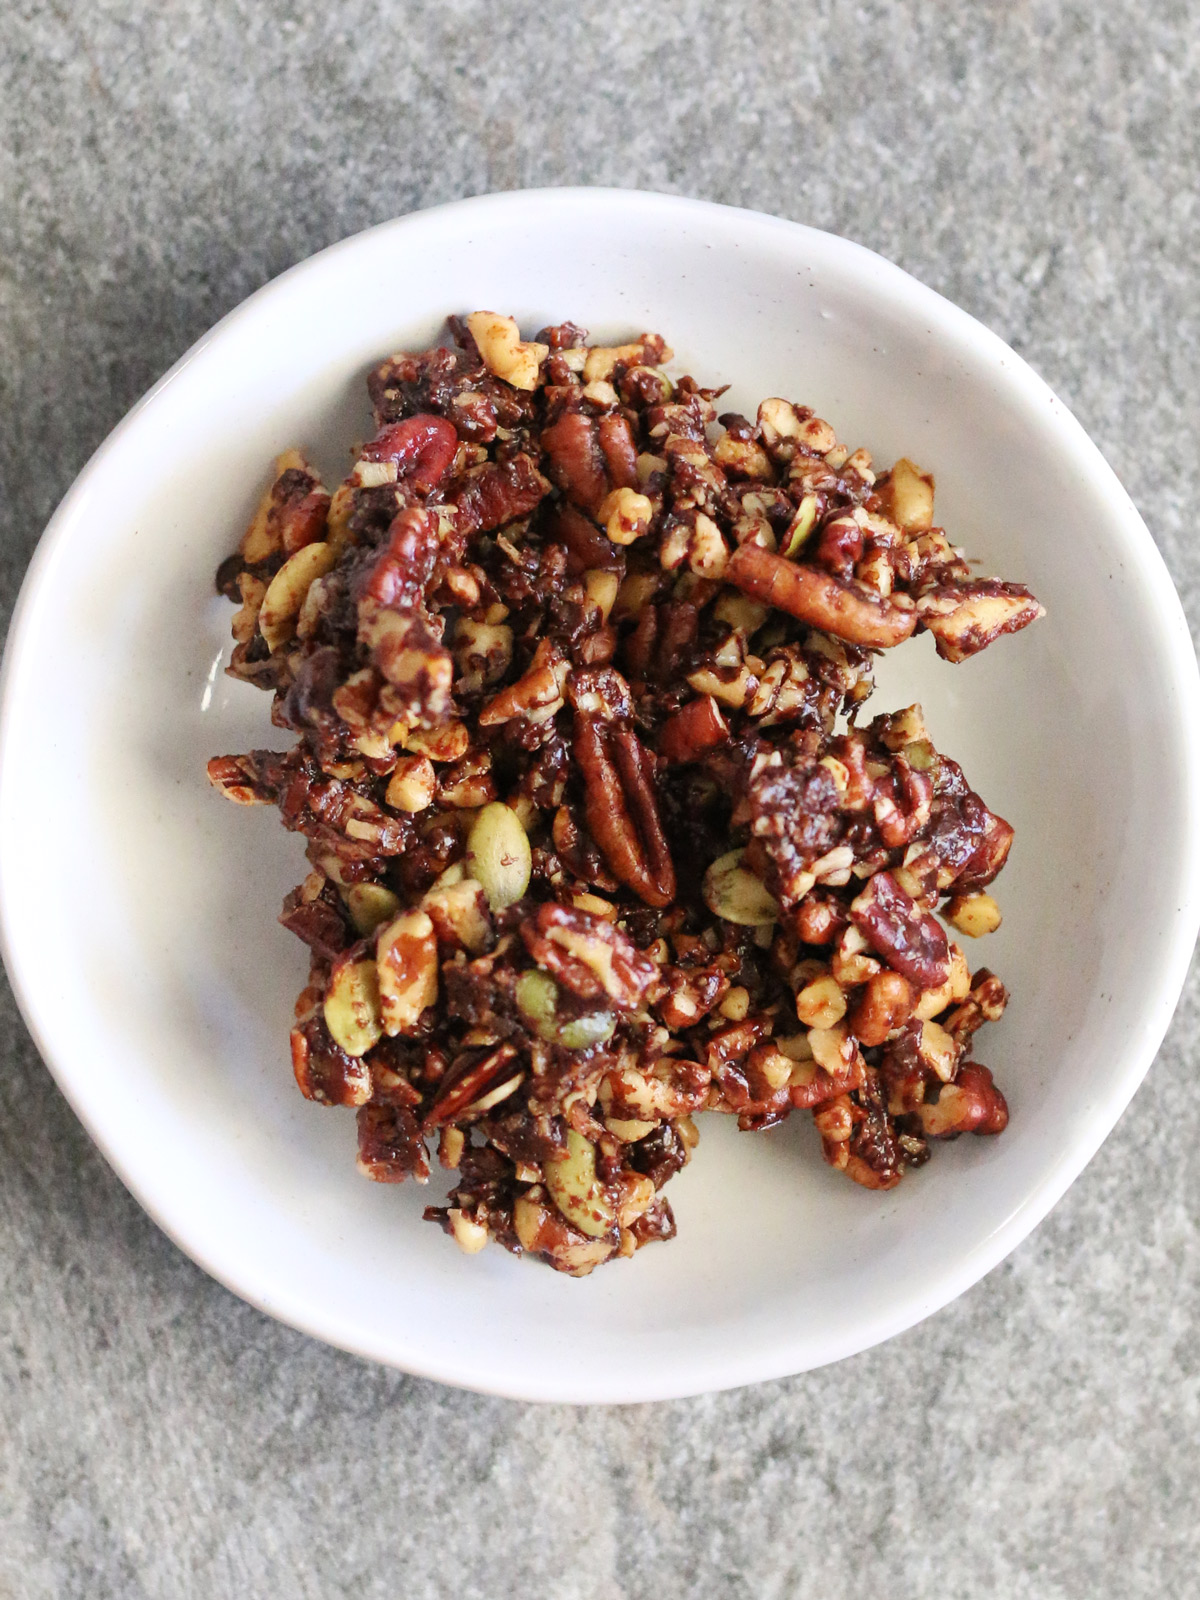 Grain-Free Chocolate Granola is a healthy and delicious snack. Get the recipe from Wholesome Skillet.